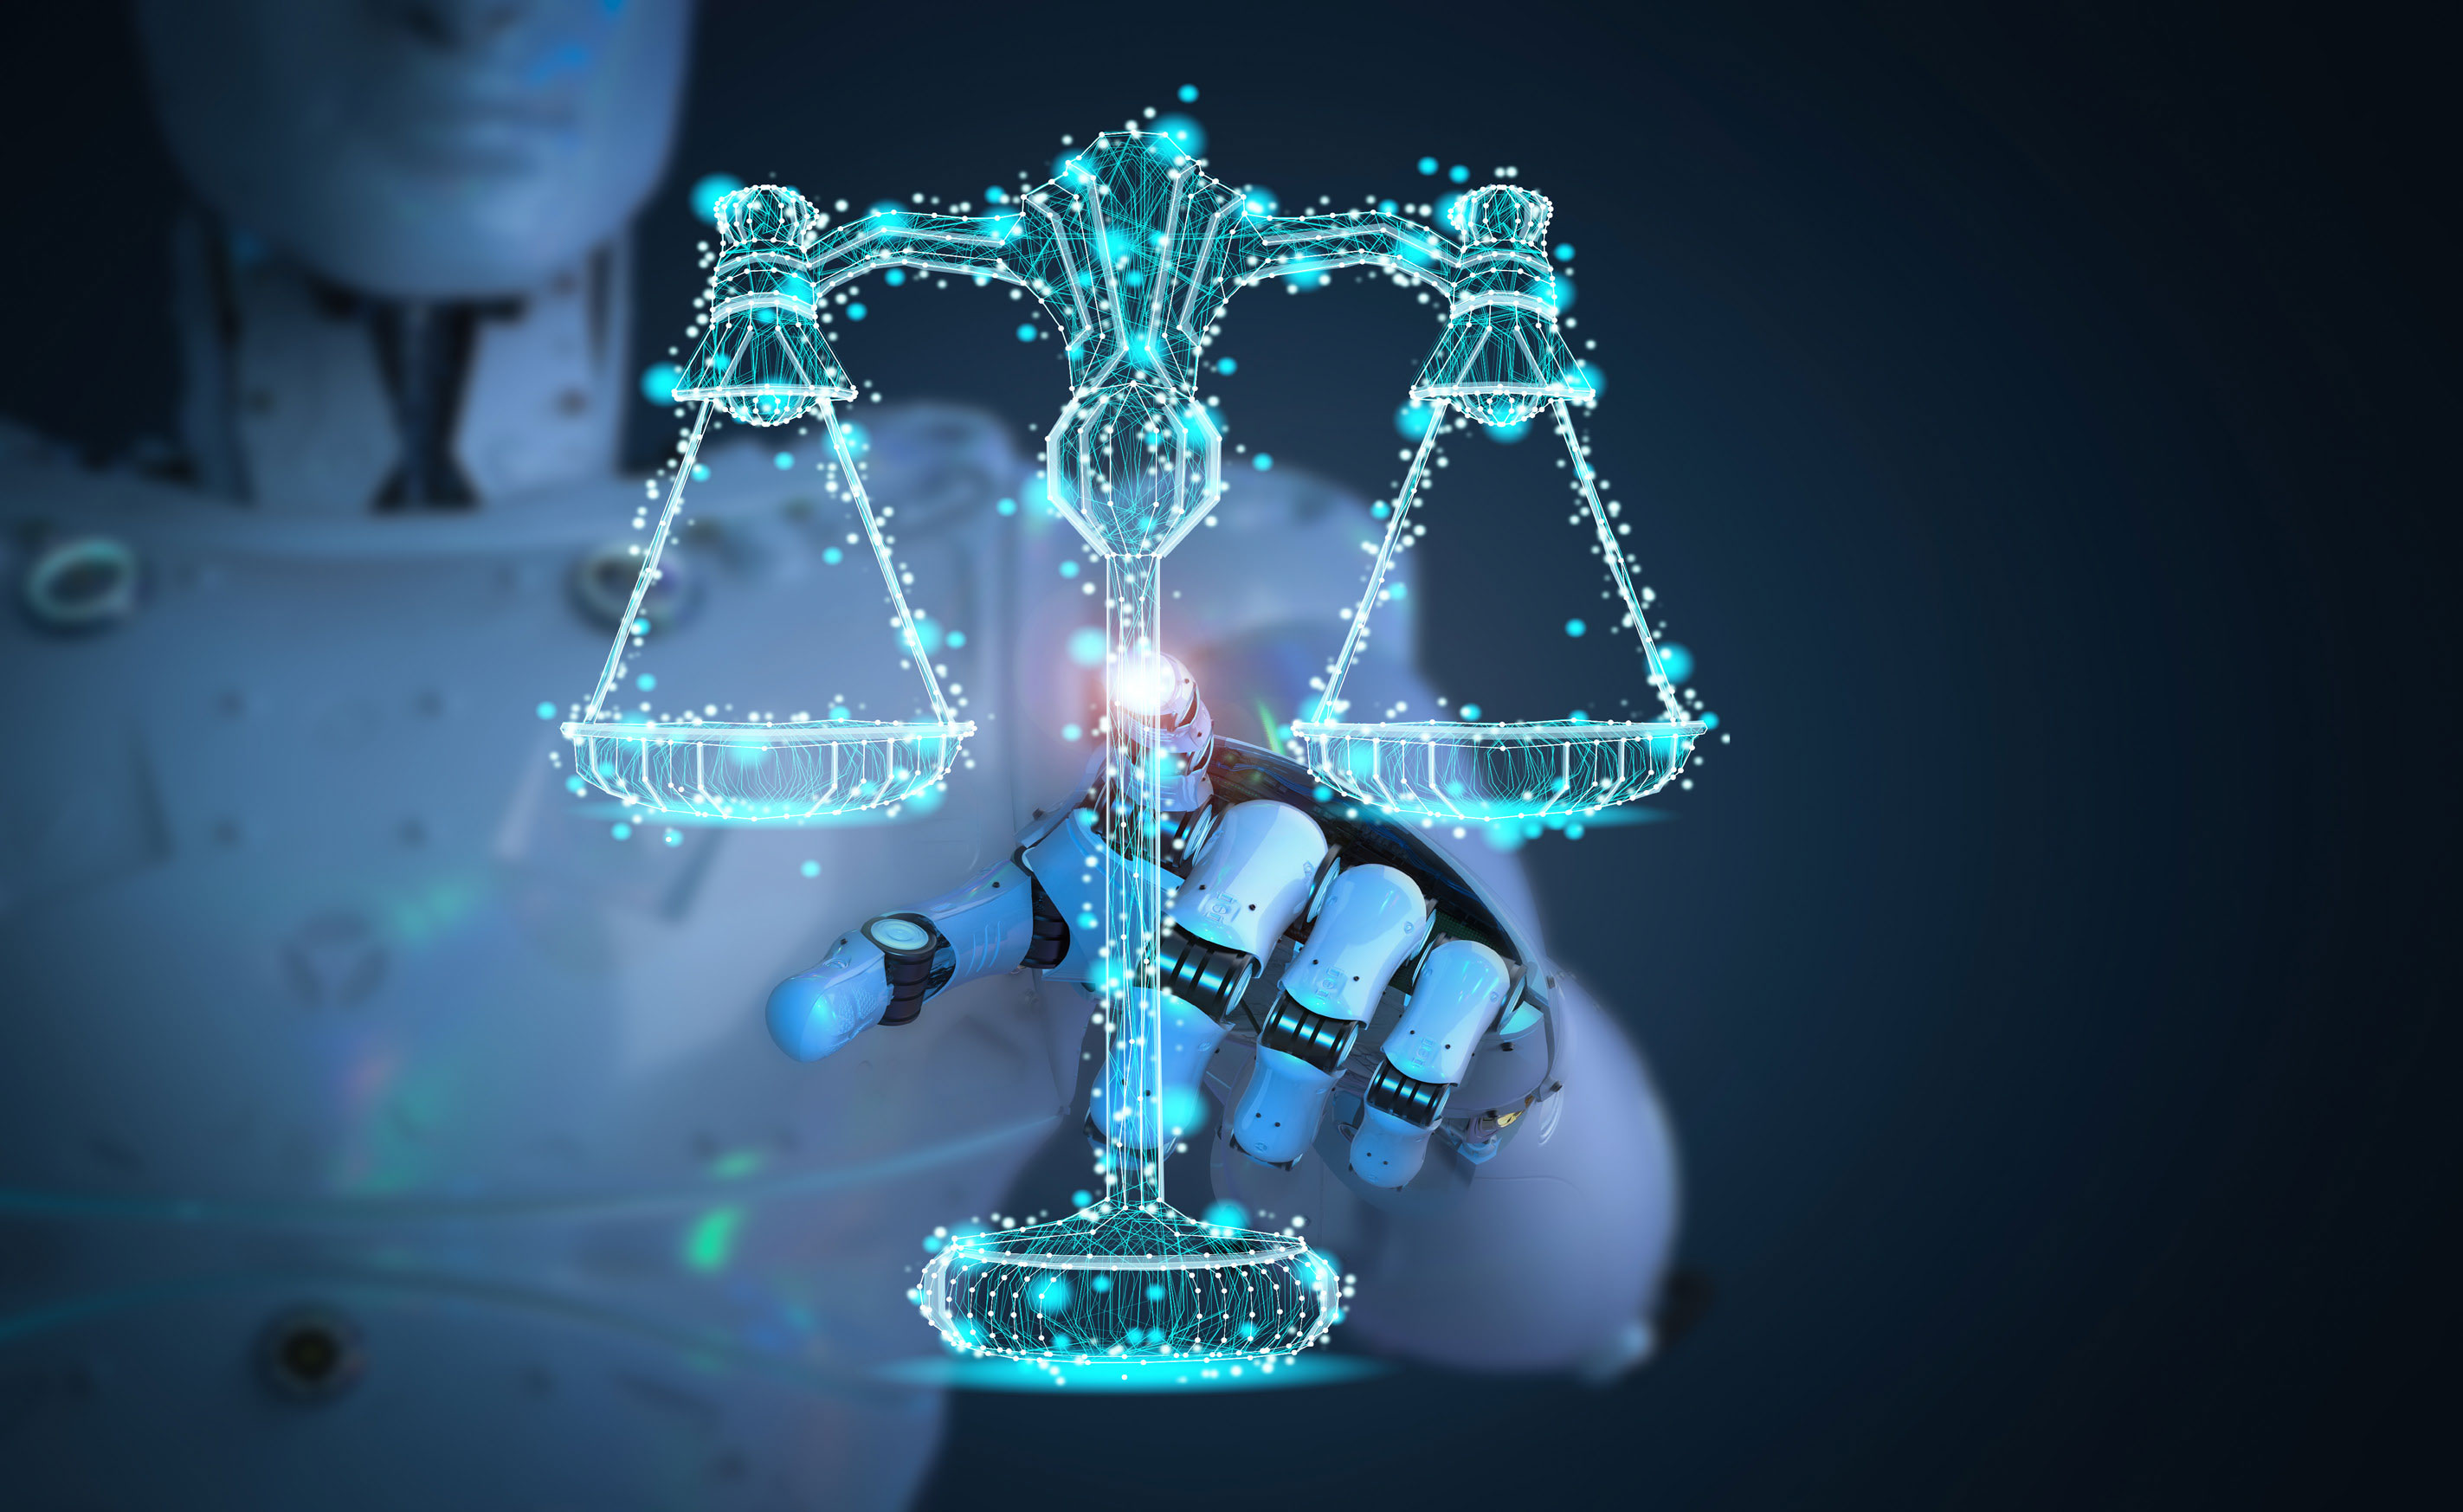 Artificial Intelligence Technology Solutions (AITX) Stock Rises 4% After Receiving Order